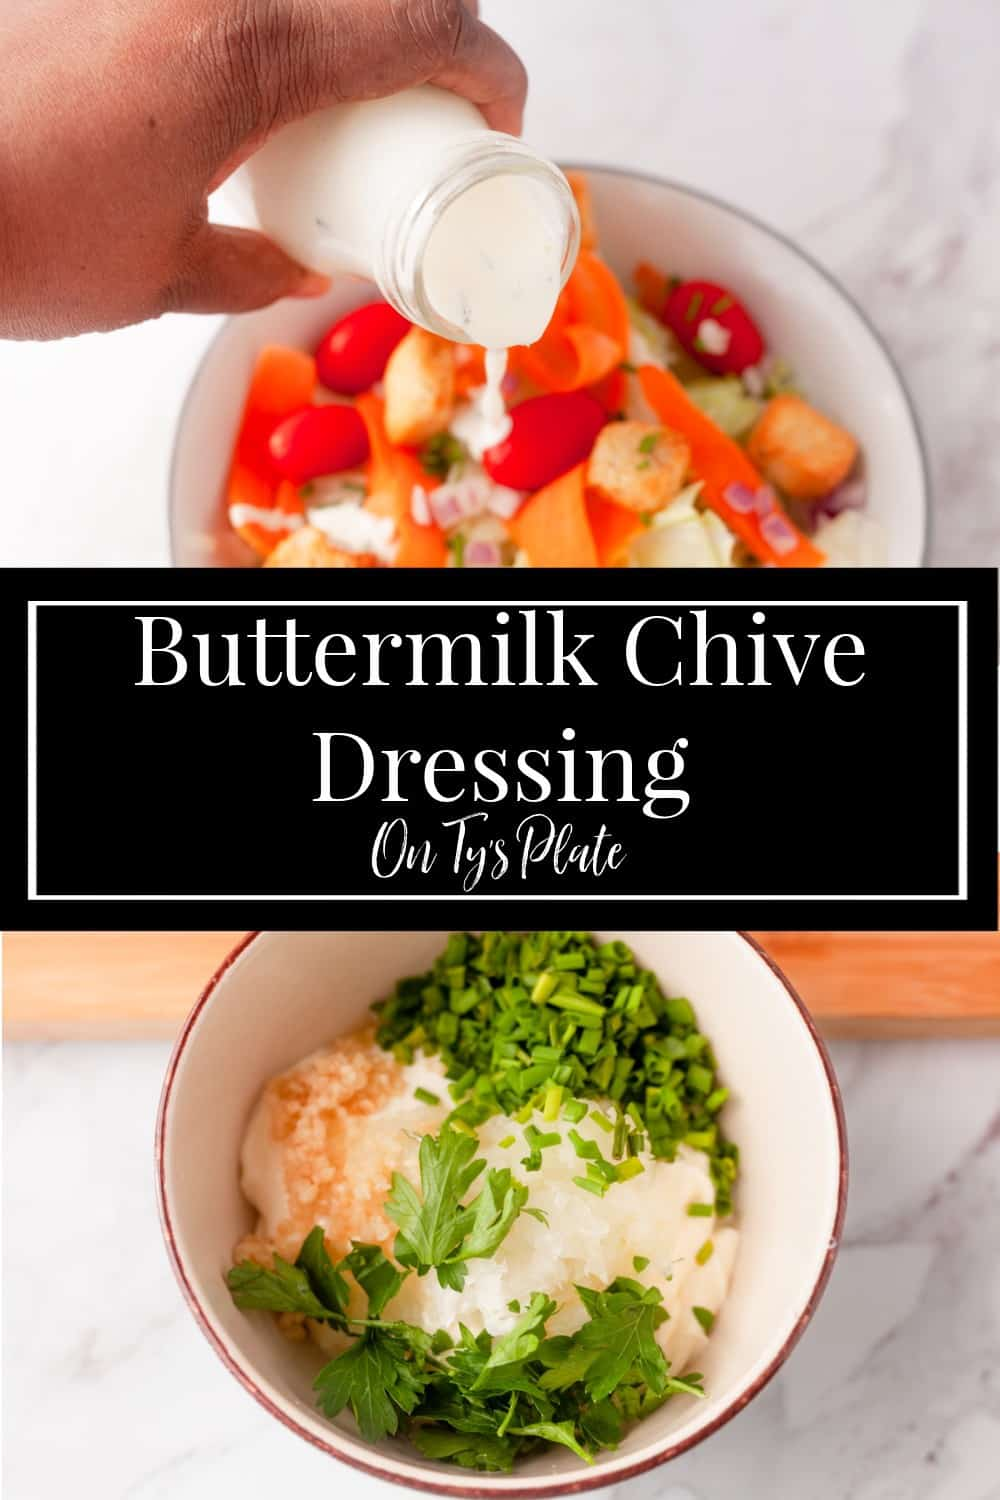 Buttermilk Chive Dressing